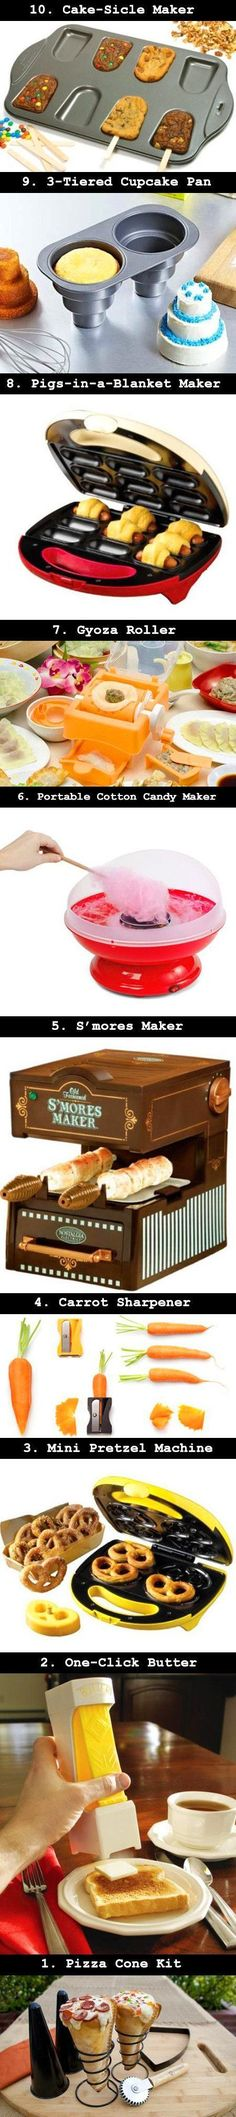 nice 10 Awesome Kitchen Gadgets and Accessories Geeks Would Love...